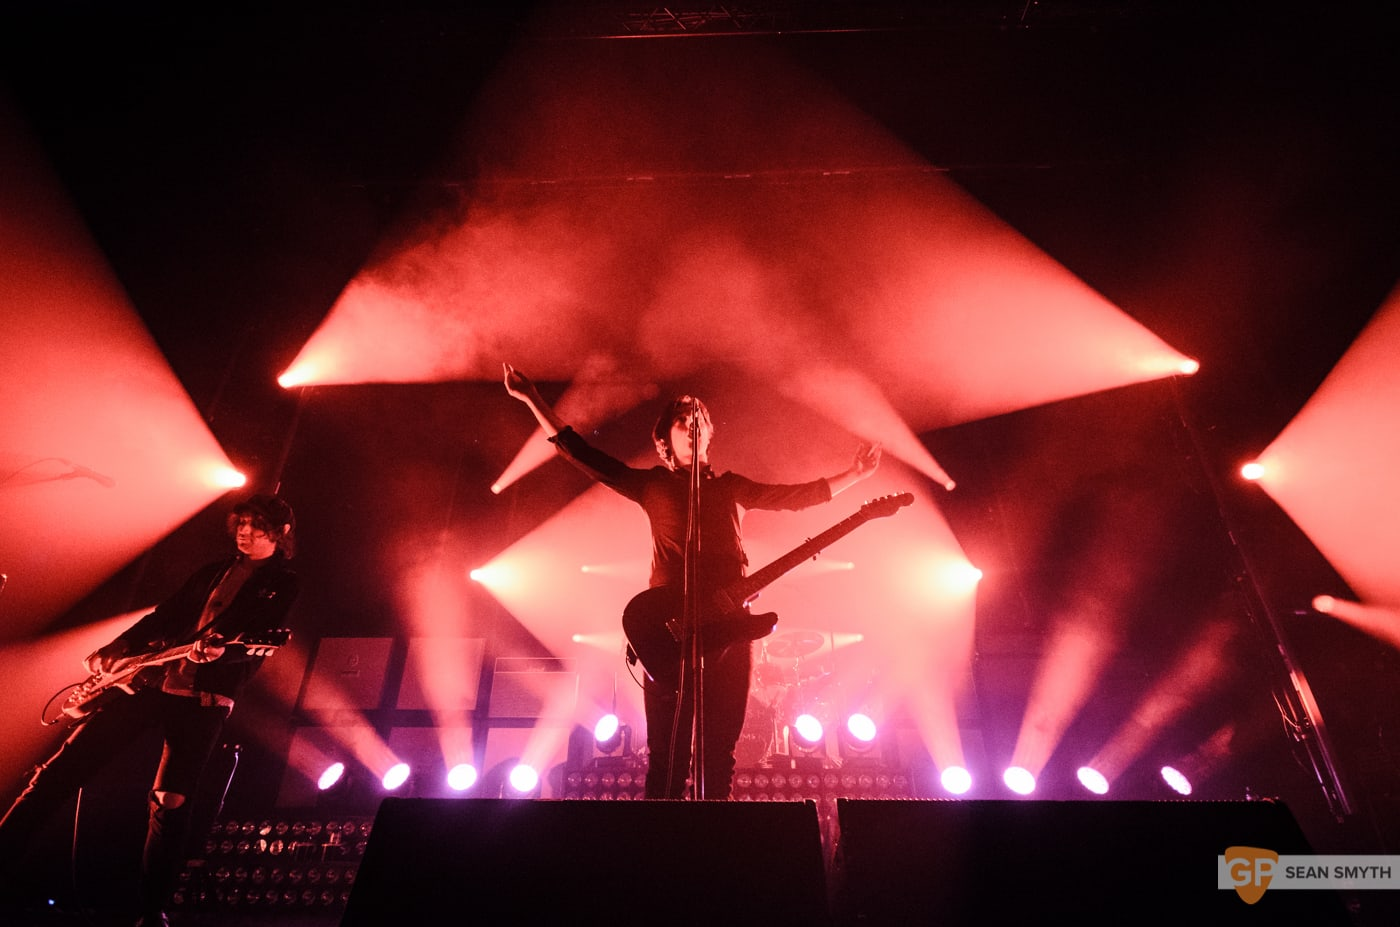 catfish-and-the-bottlemen-at-the-olympia-theatre-by-sean-smyth-20-11-16-8-of-27